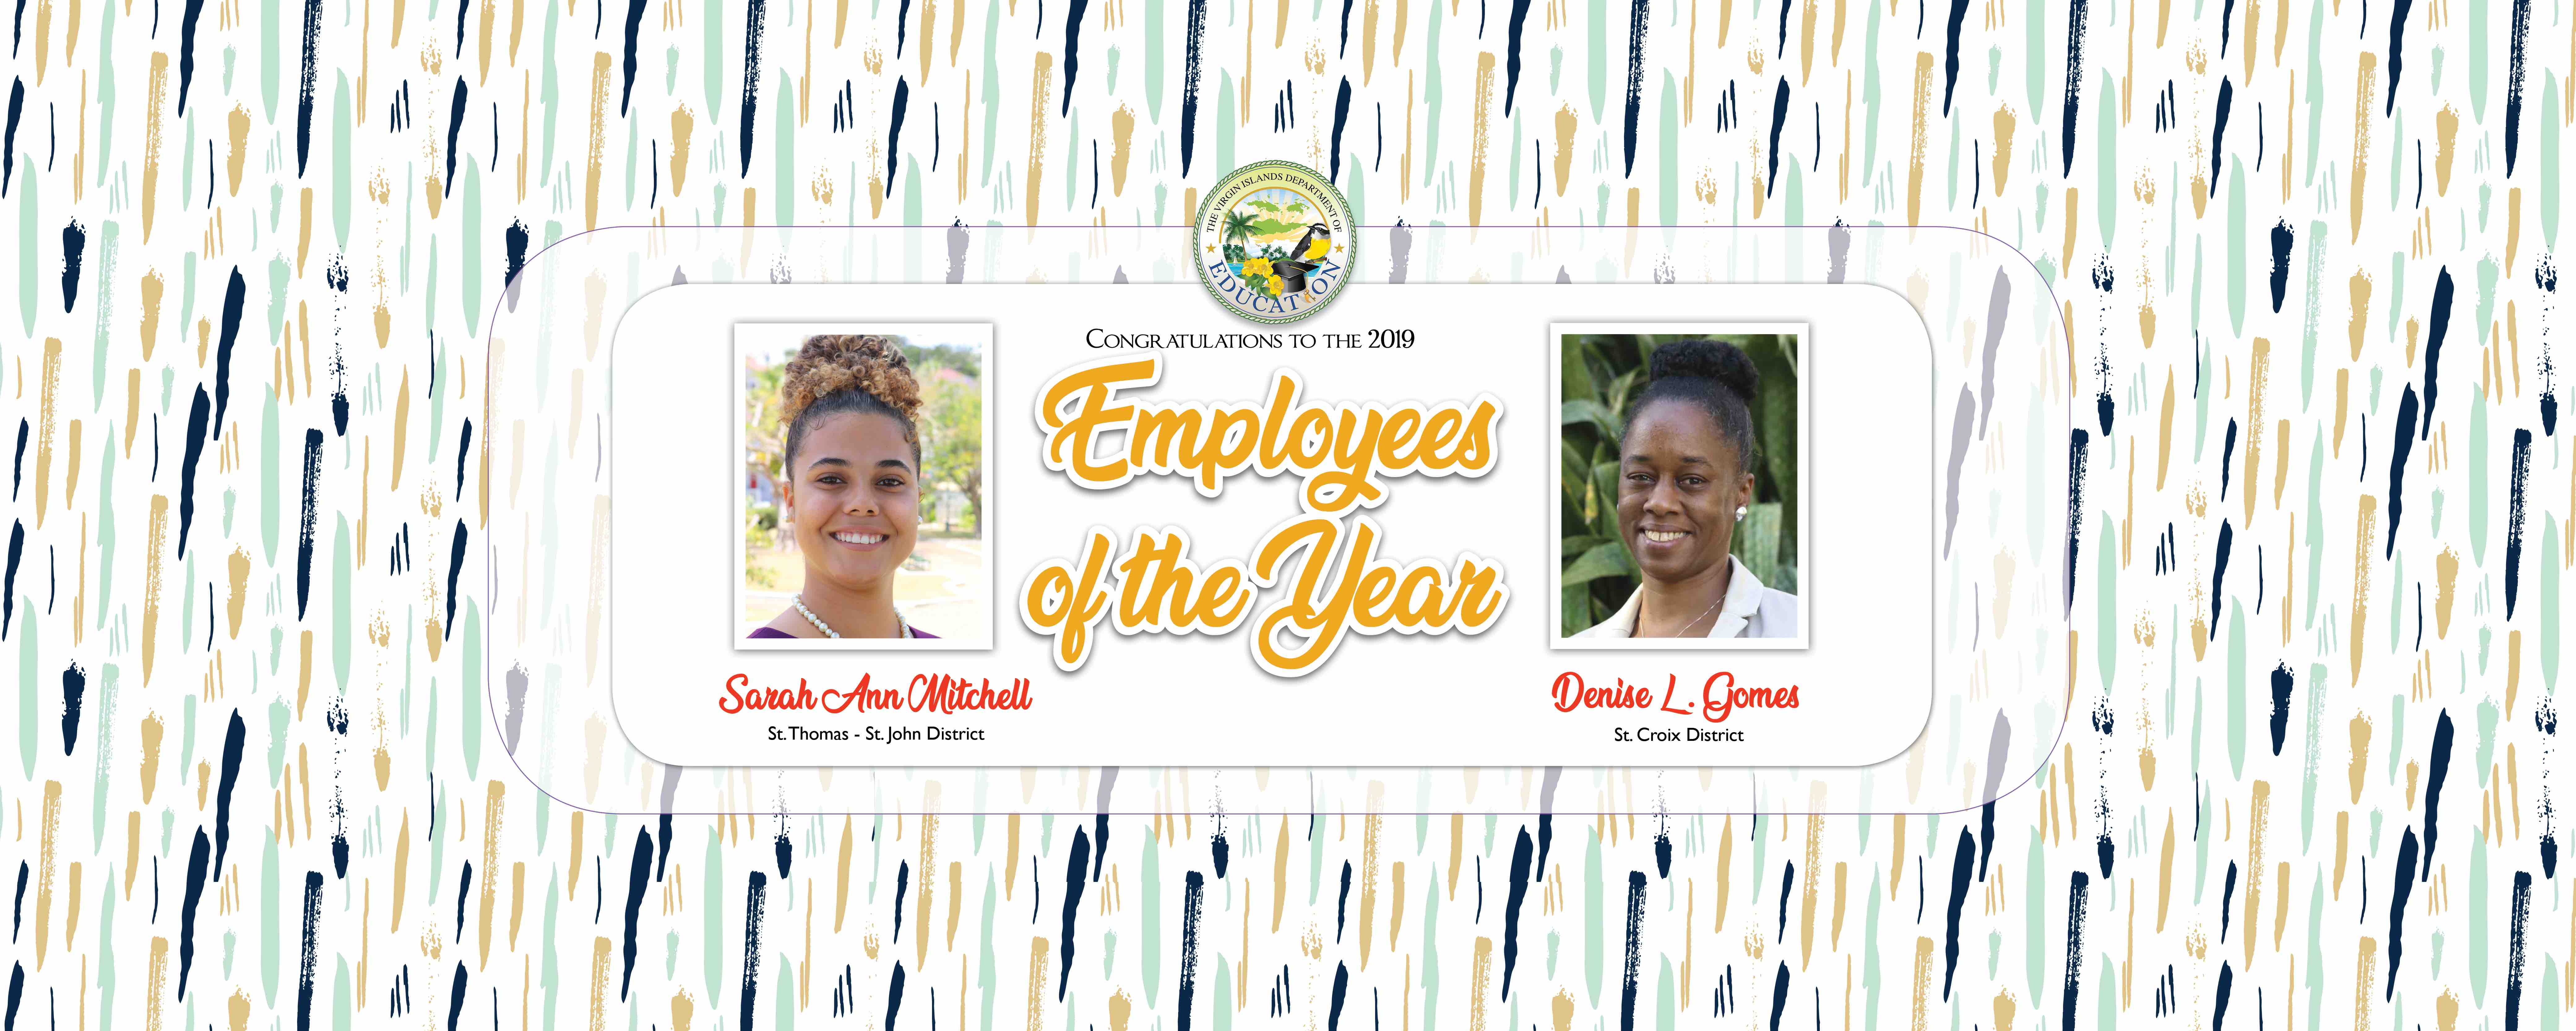 Gomes and Mitchell named Employees of the Year